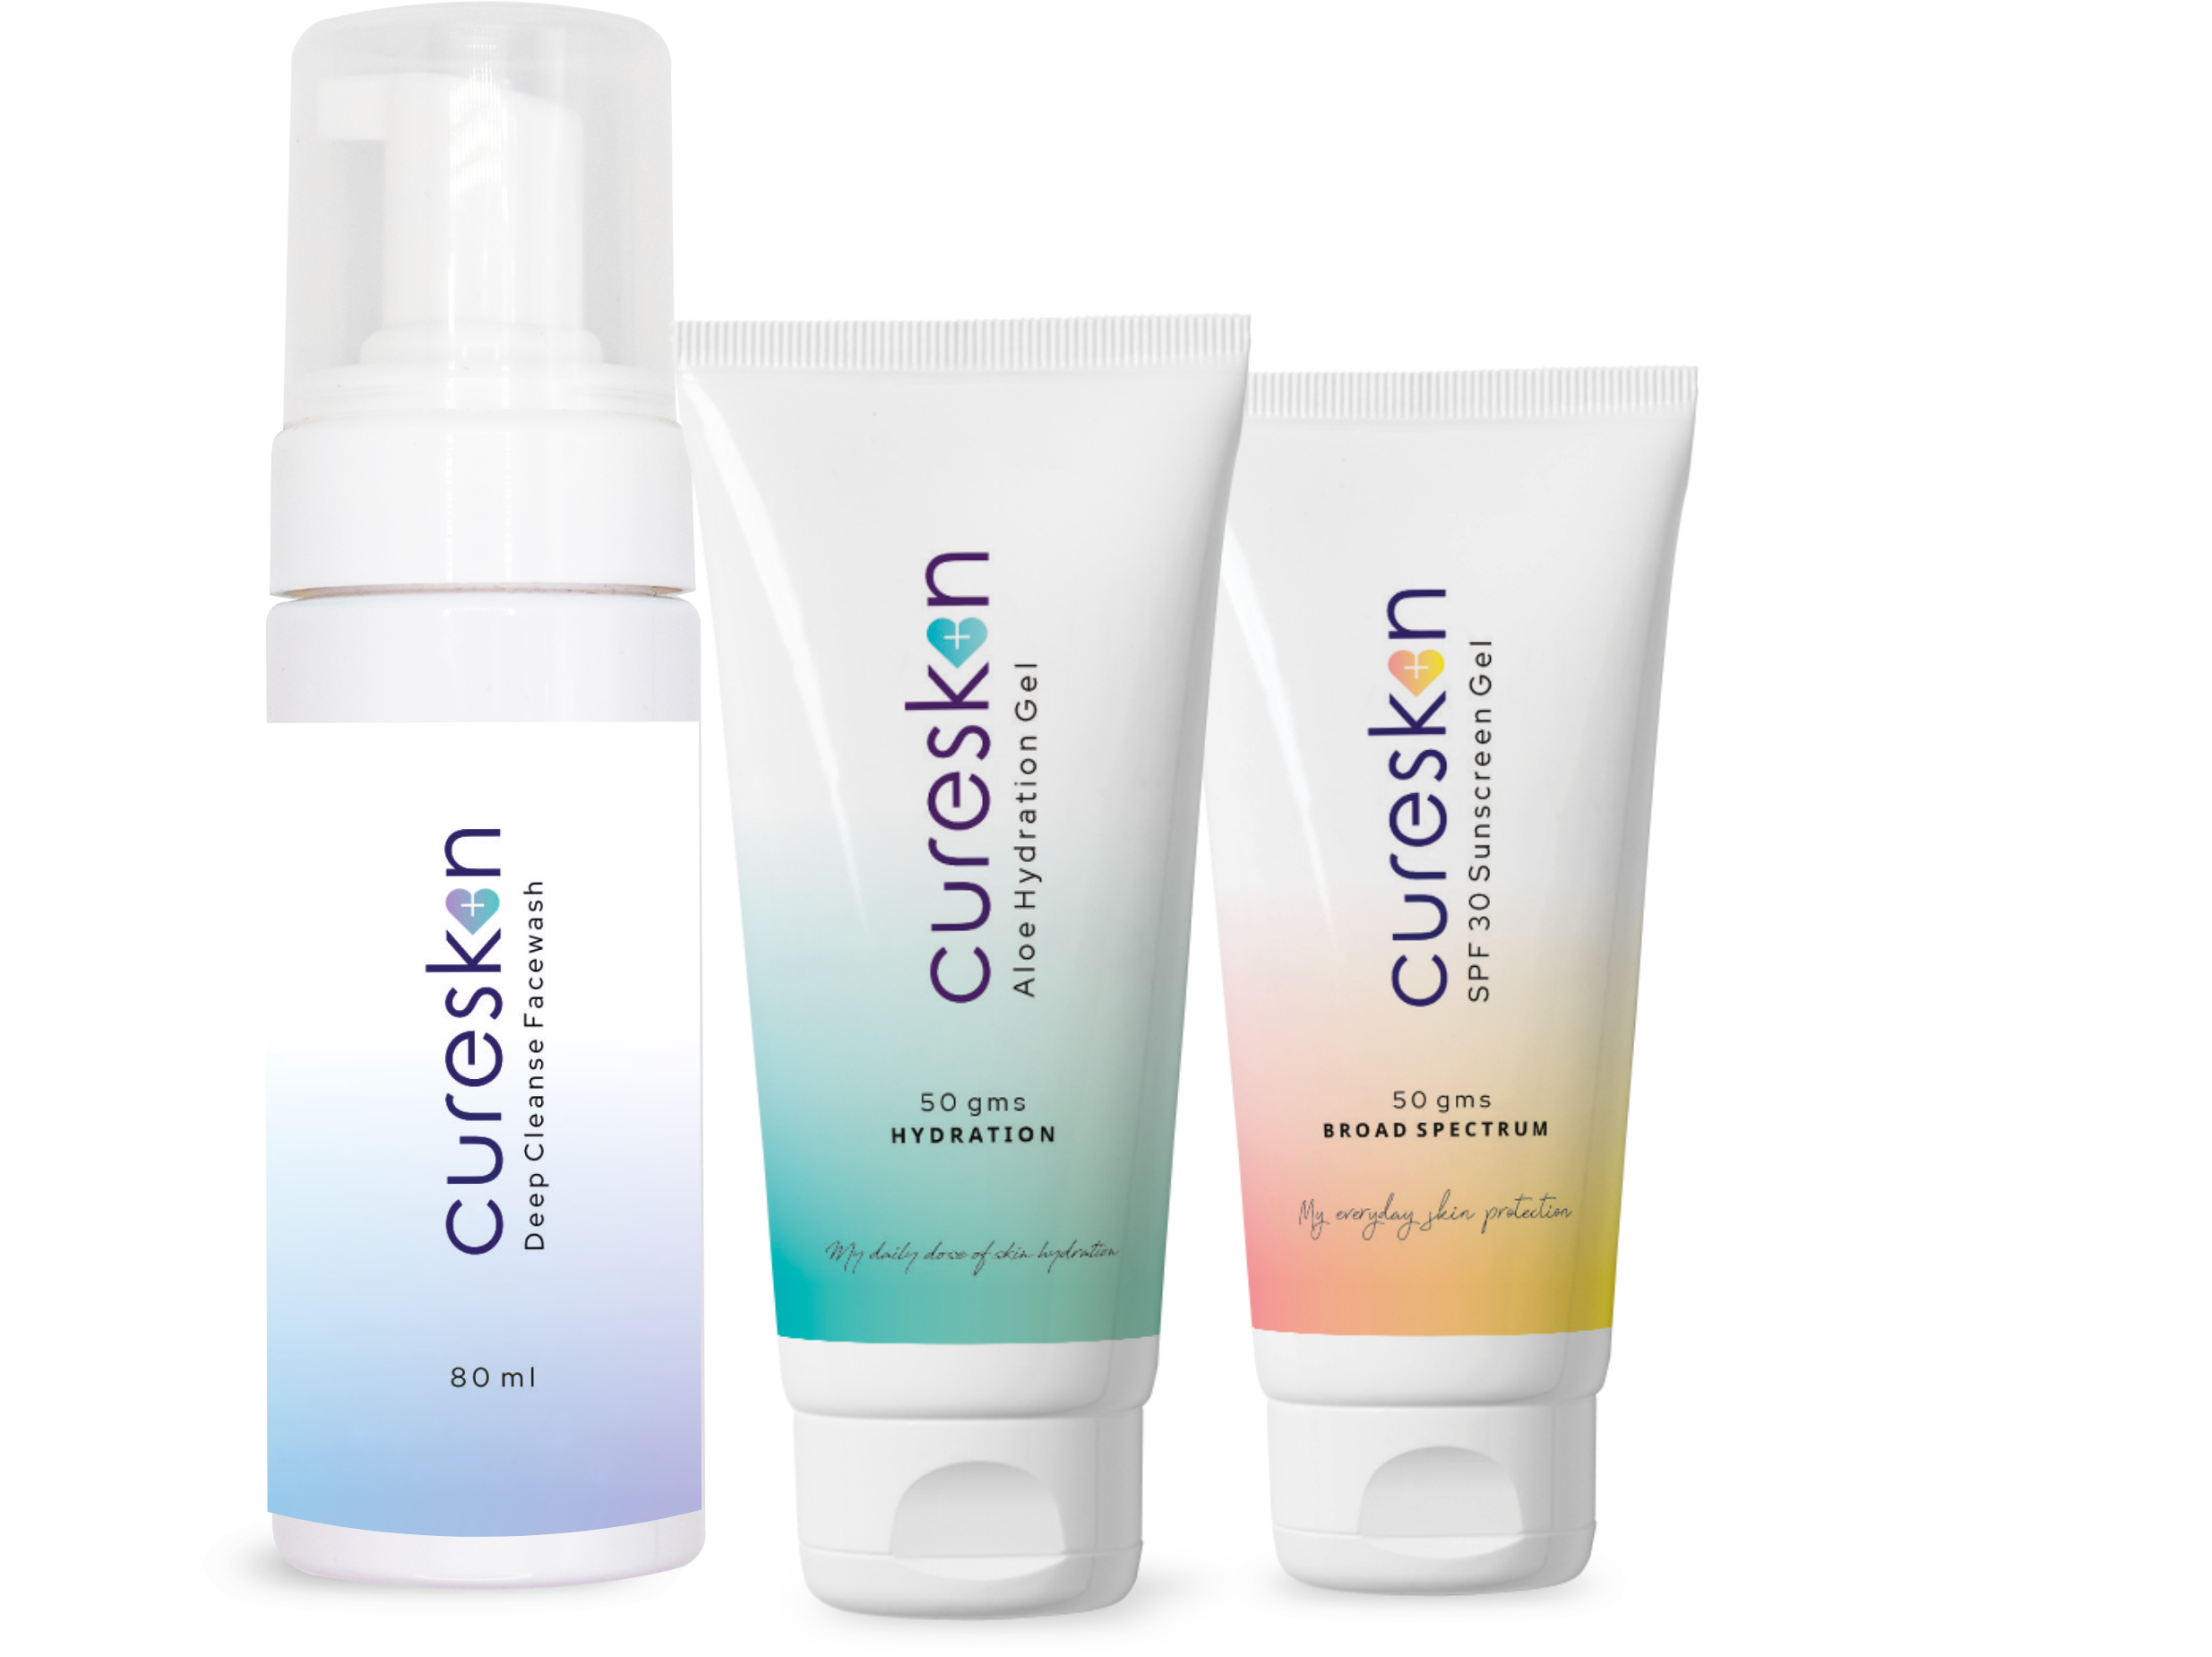 cureskin products, cureskin treatment kit, skin care kit, cureskin app products, cureskin sunscreen, cureskin face wash, hydration gel